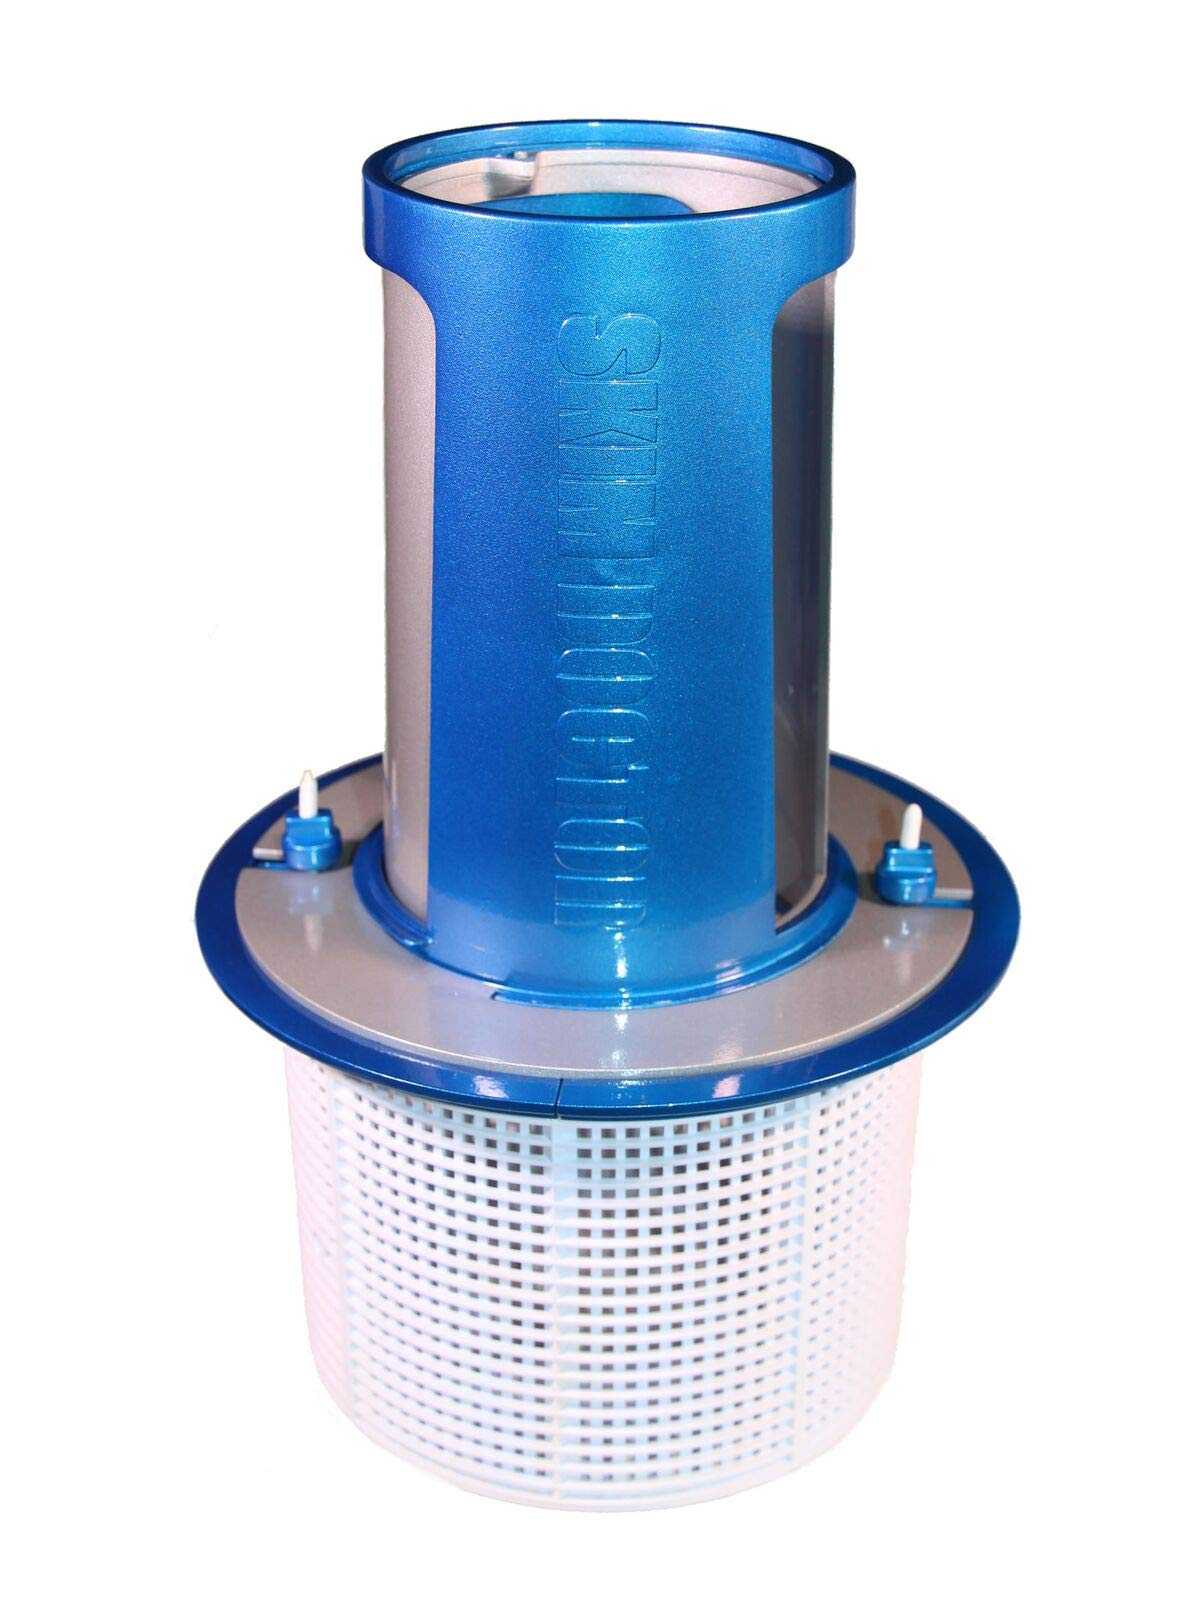 SkimDoctor 2.0 Pool Skimmer - Automatic Pool Cleaner draws all water a round the Pool into Skim Basket - LESS WORK with Pool Leaf Pole Net - Enhances Inground Pool Vacuum - Increases Baskets Capacity